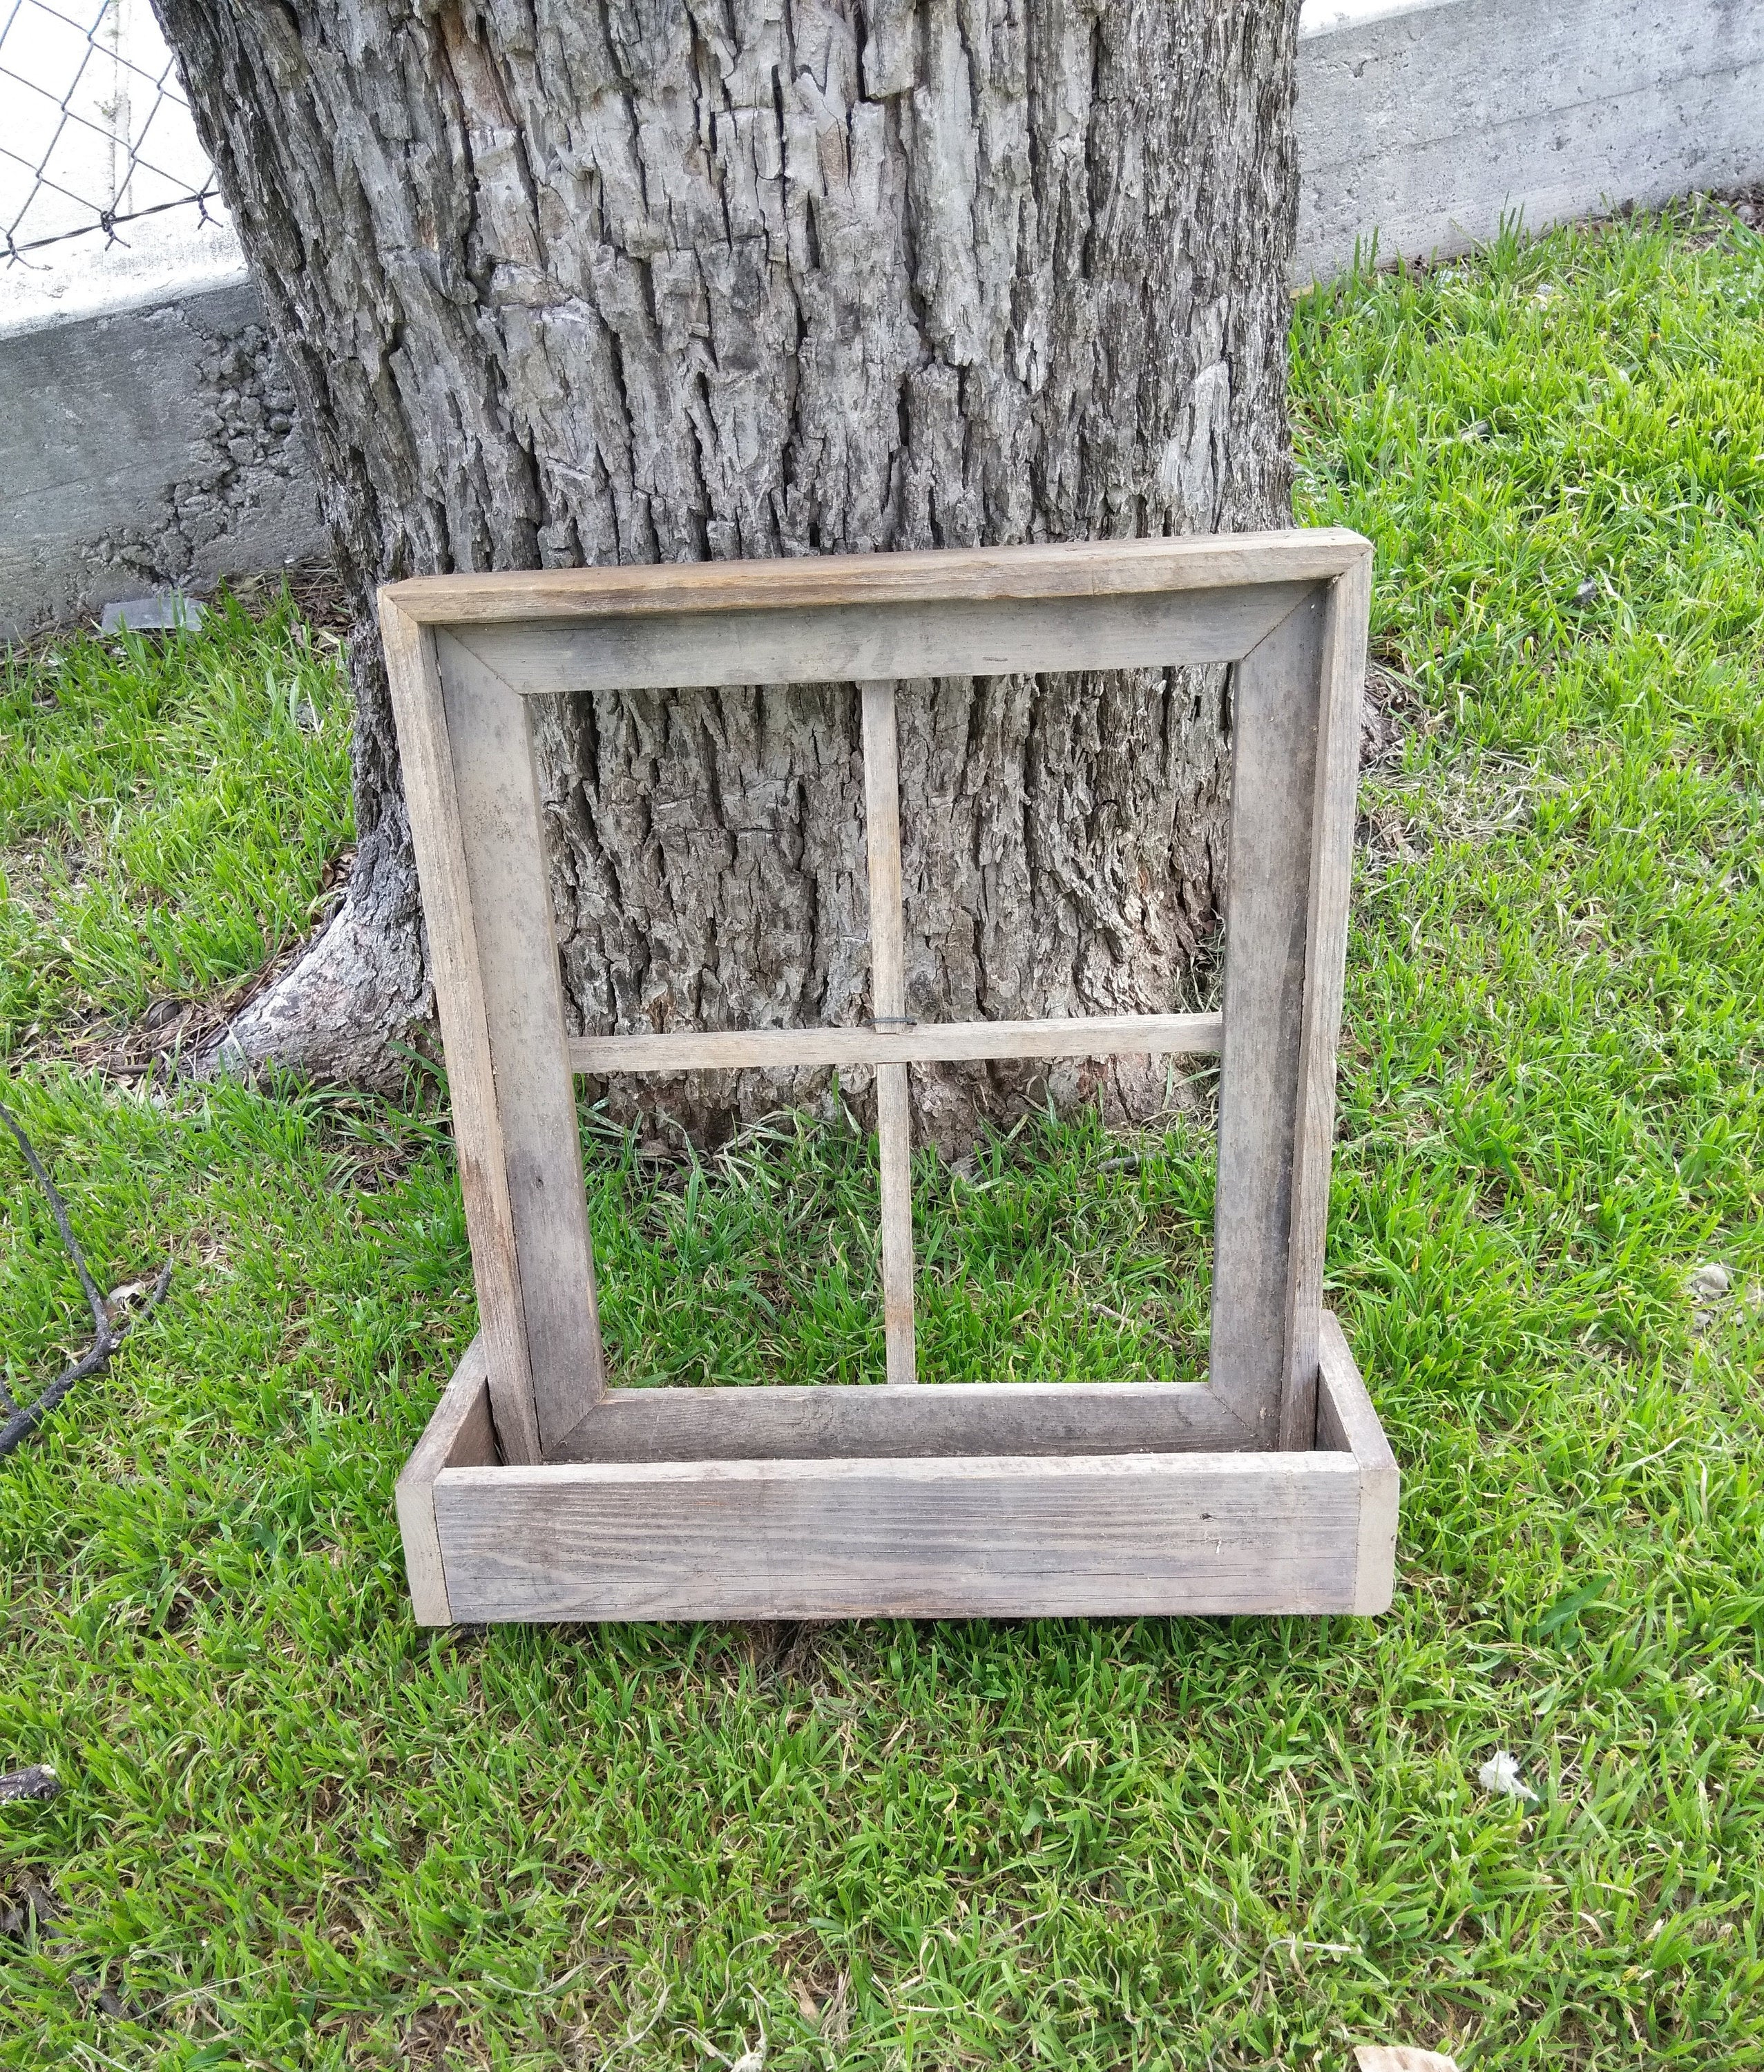 Reclaimed Barn Window Frame Window Planter Box, Rustic Window Box Planter  Gray Weather Wood Farmhouse Wood Salvage Decor intended for Old Rustic Barn Window Frame (Image 23 of 30)